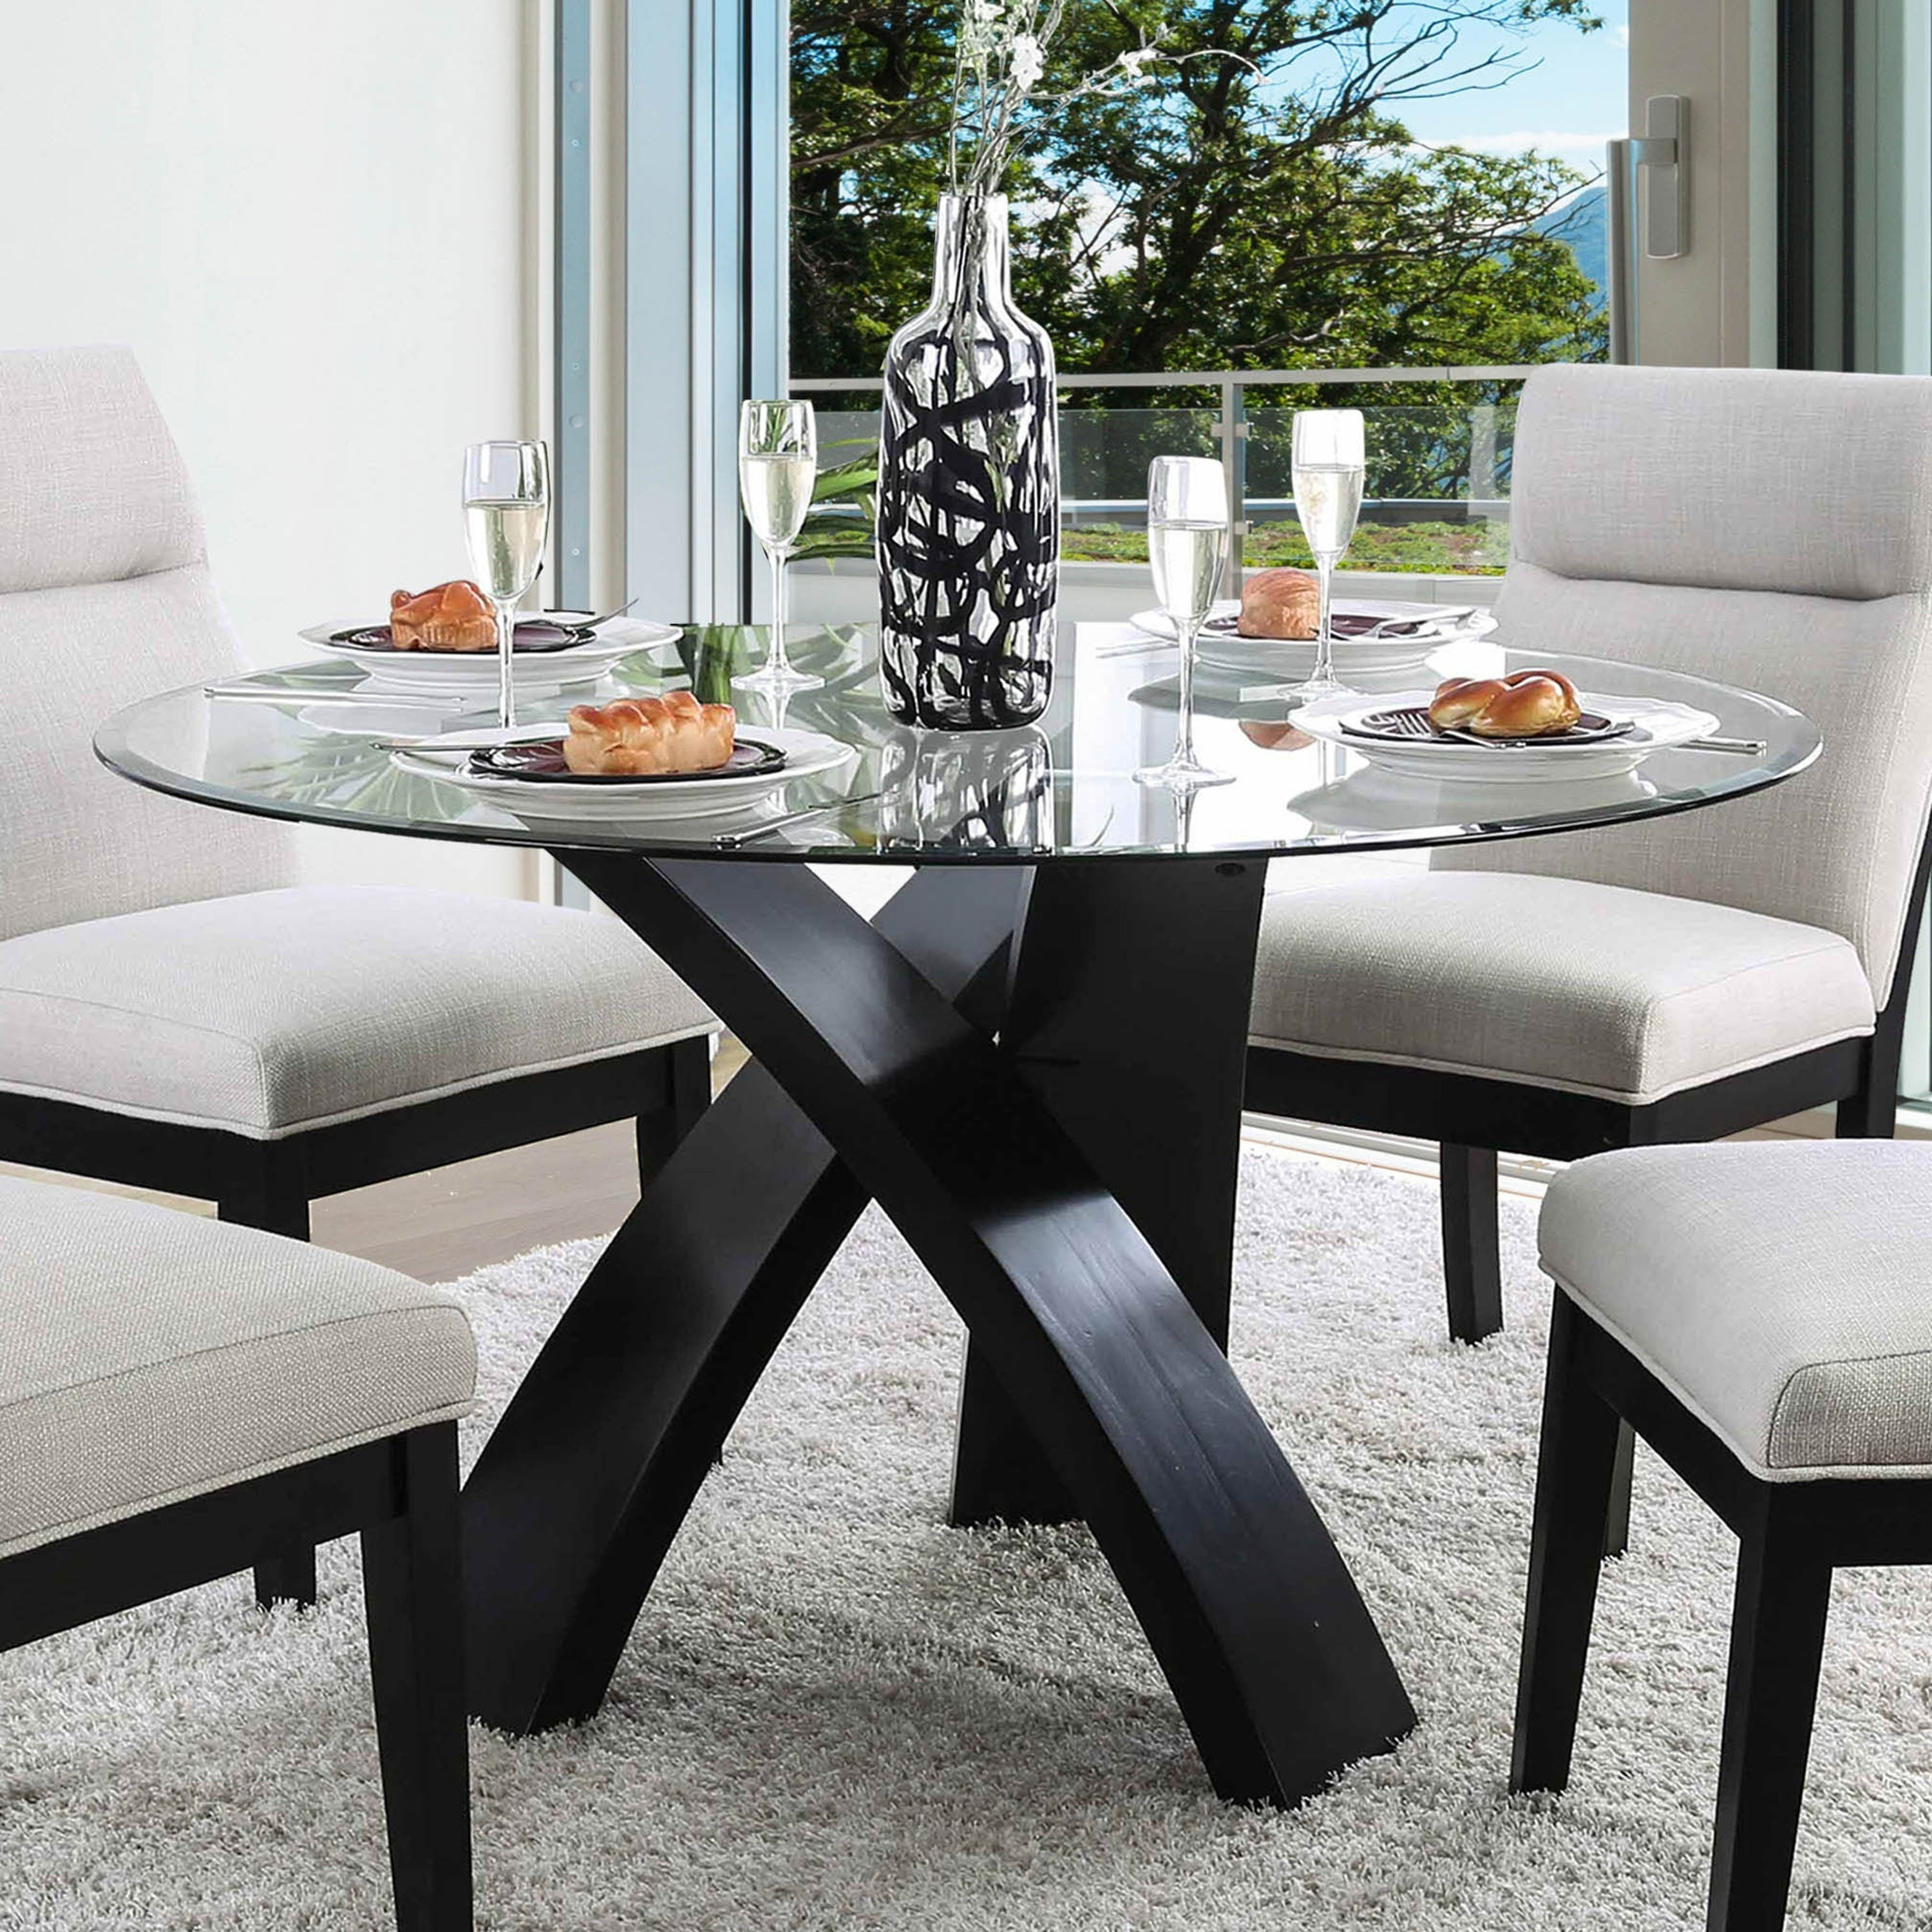 Furniture Of America Zibo Contemporary Black 52 Inch Dining Table On Sale Overstock 20911785